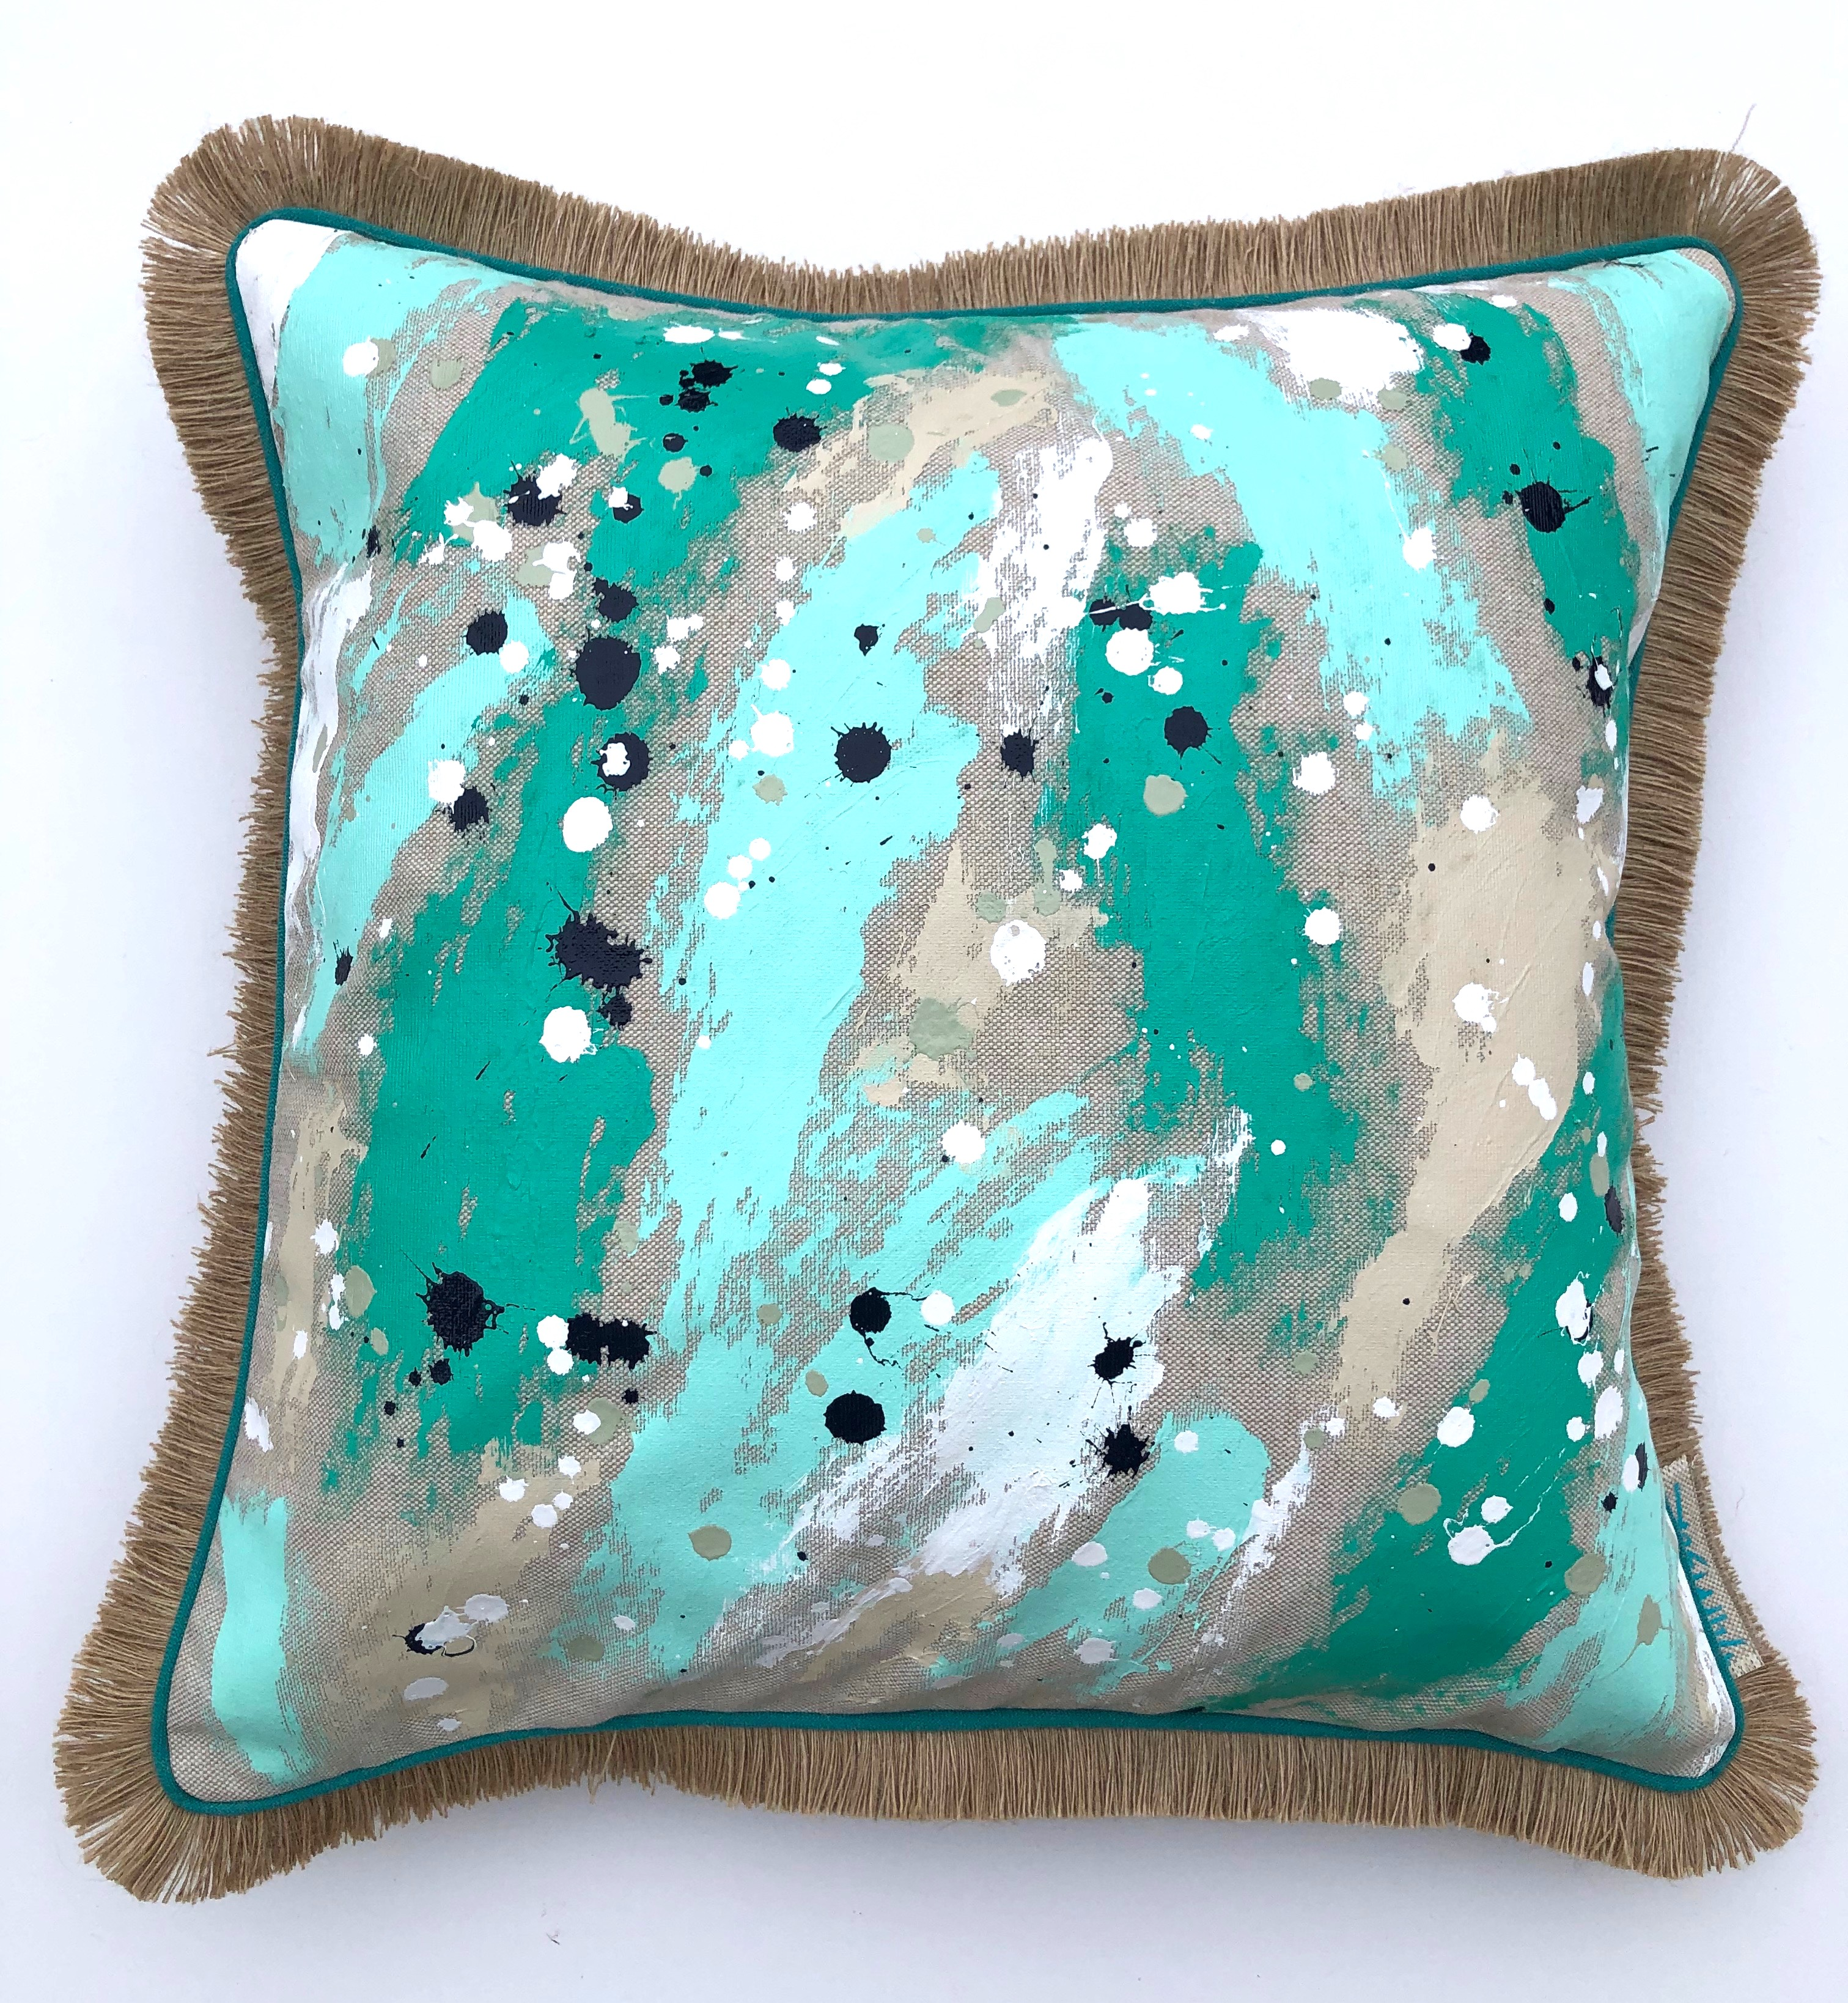 RISE AND SHINE PILLOW I